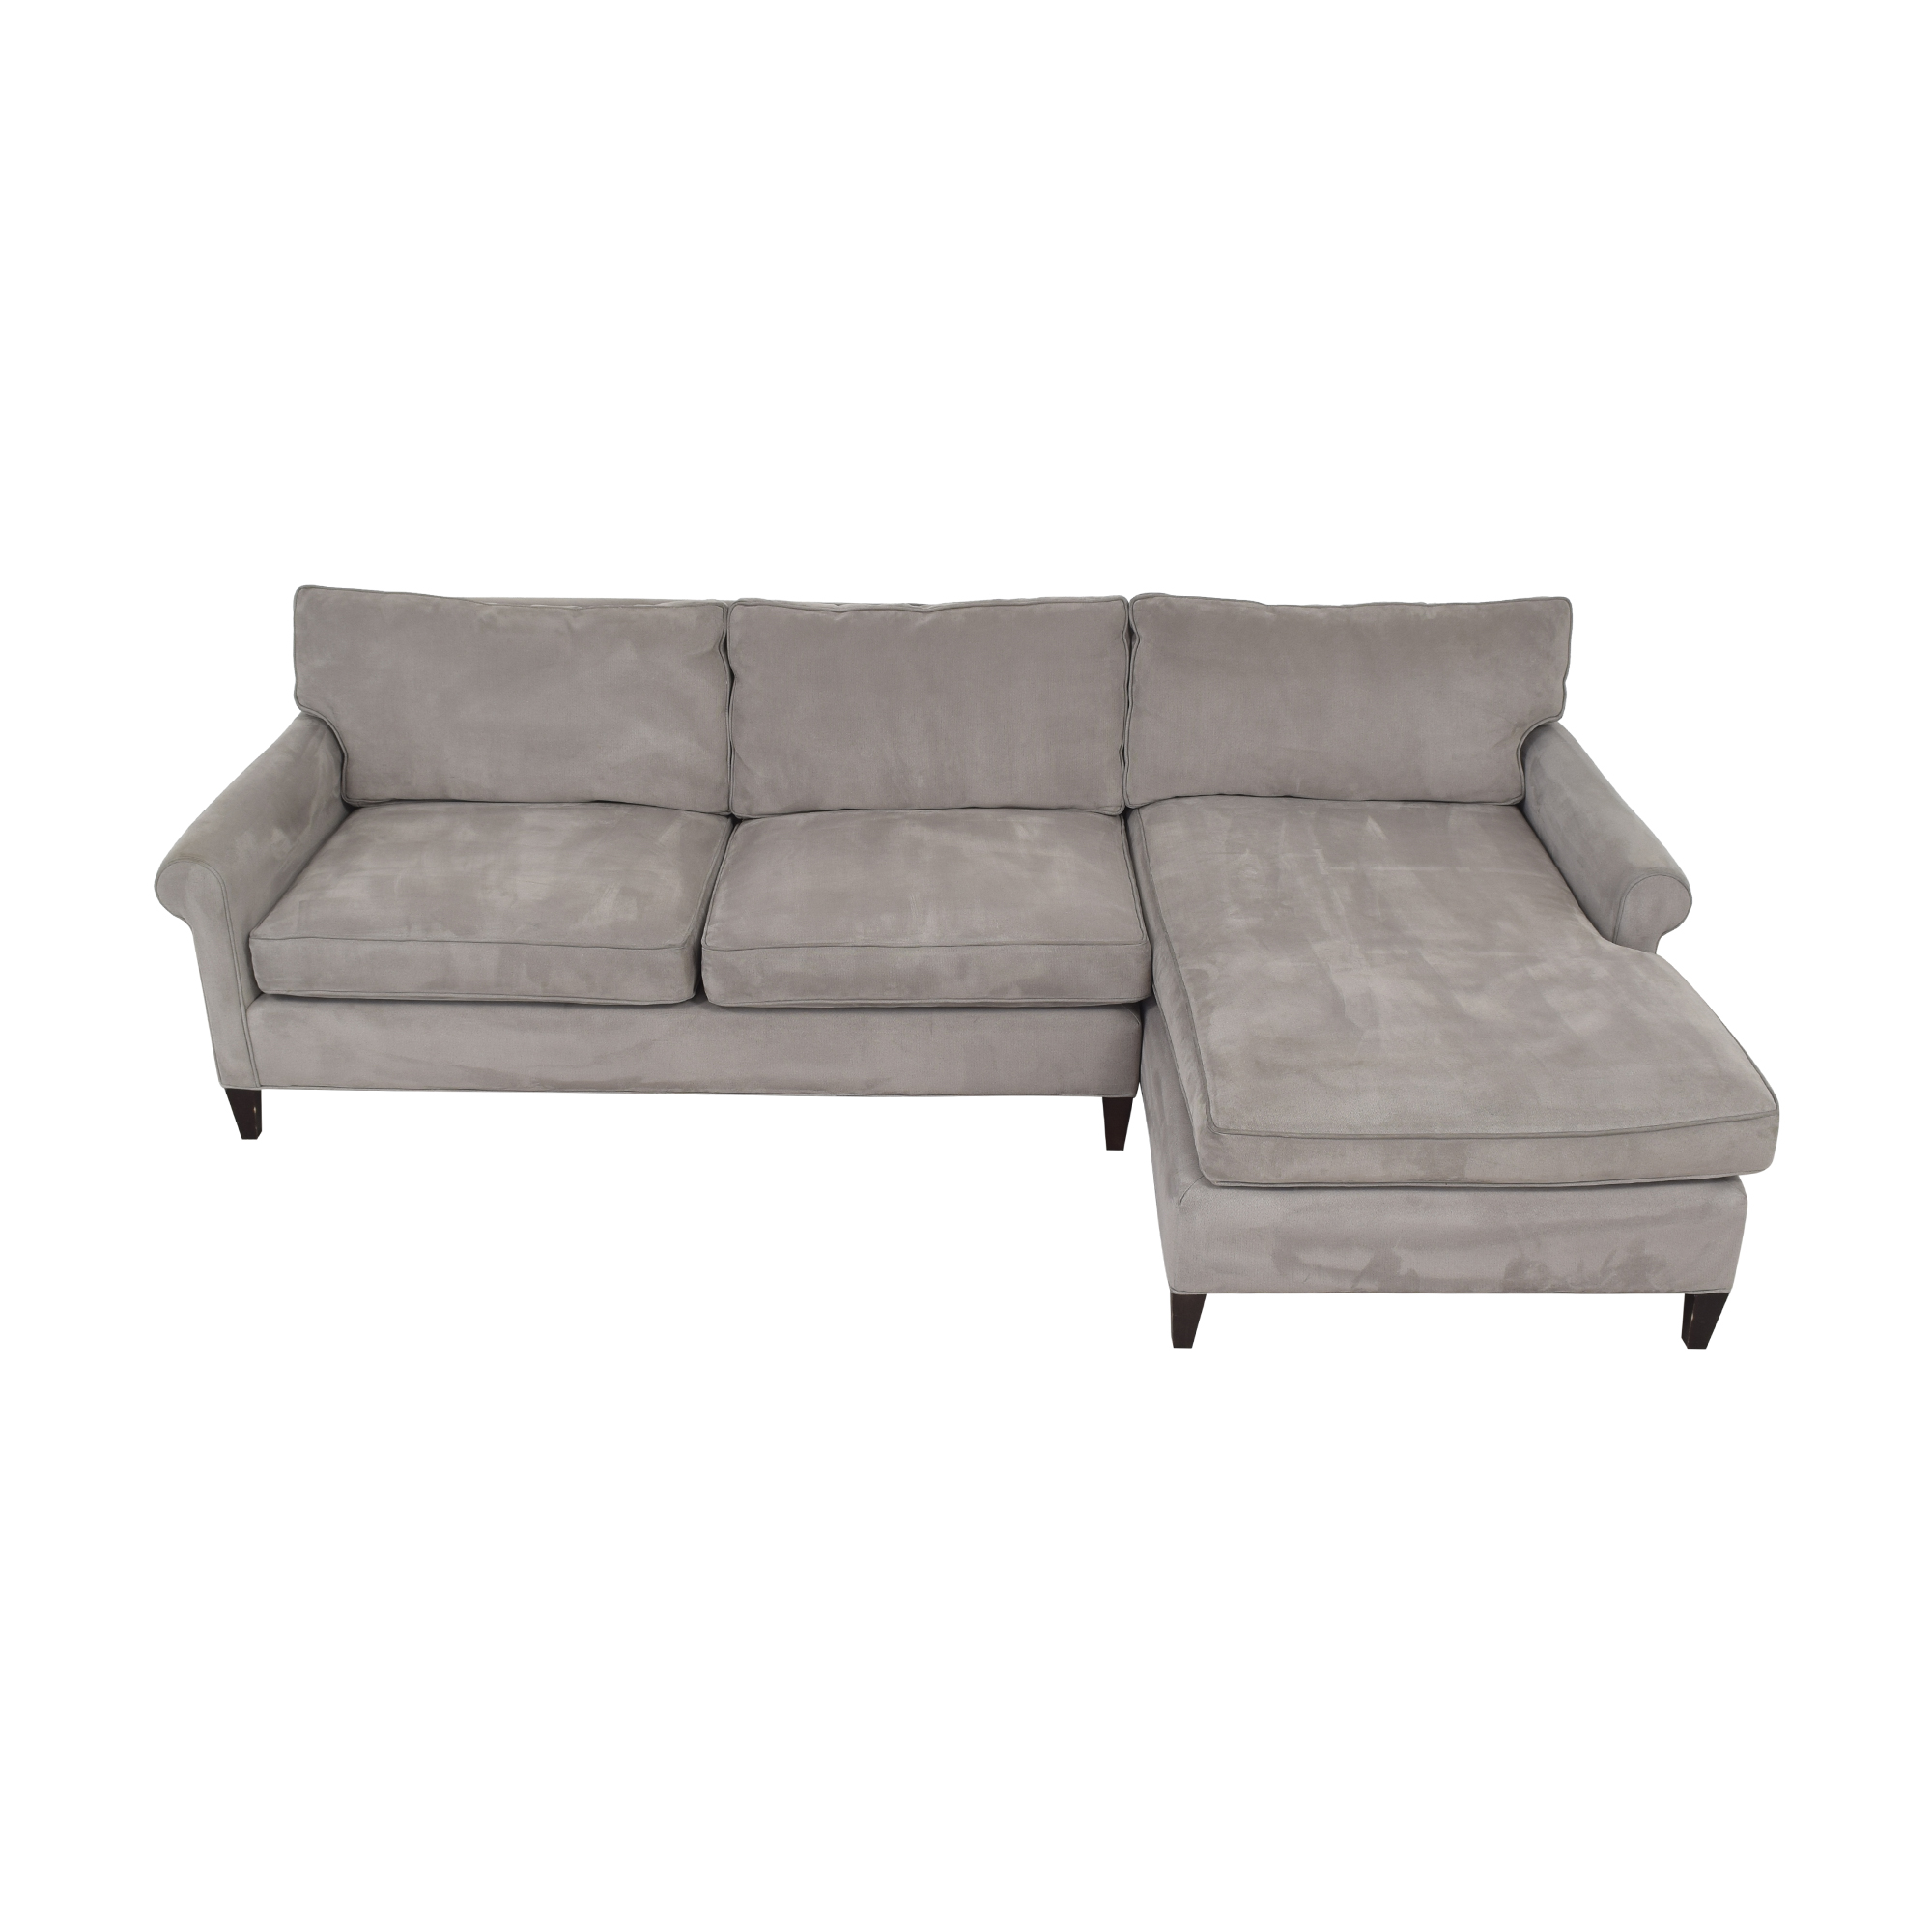 Crate & Barrel Crate & Barrel Montclair Chaise Sectional Sofa pa